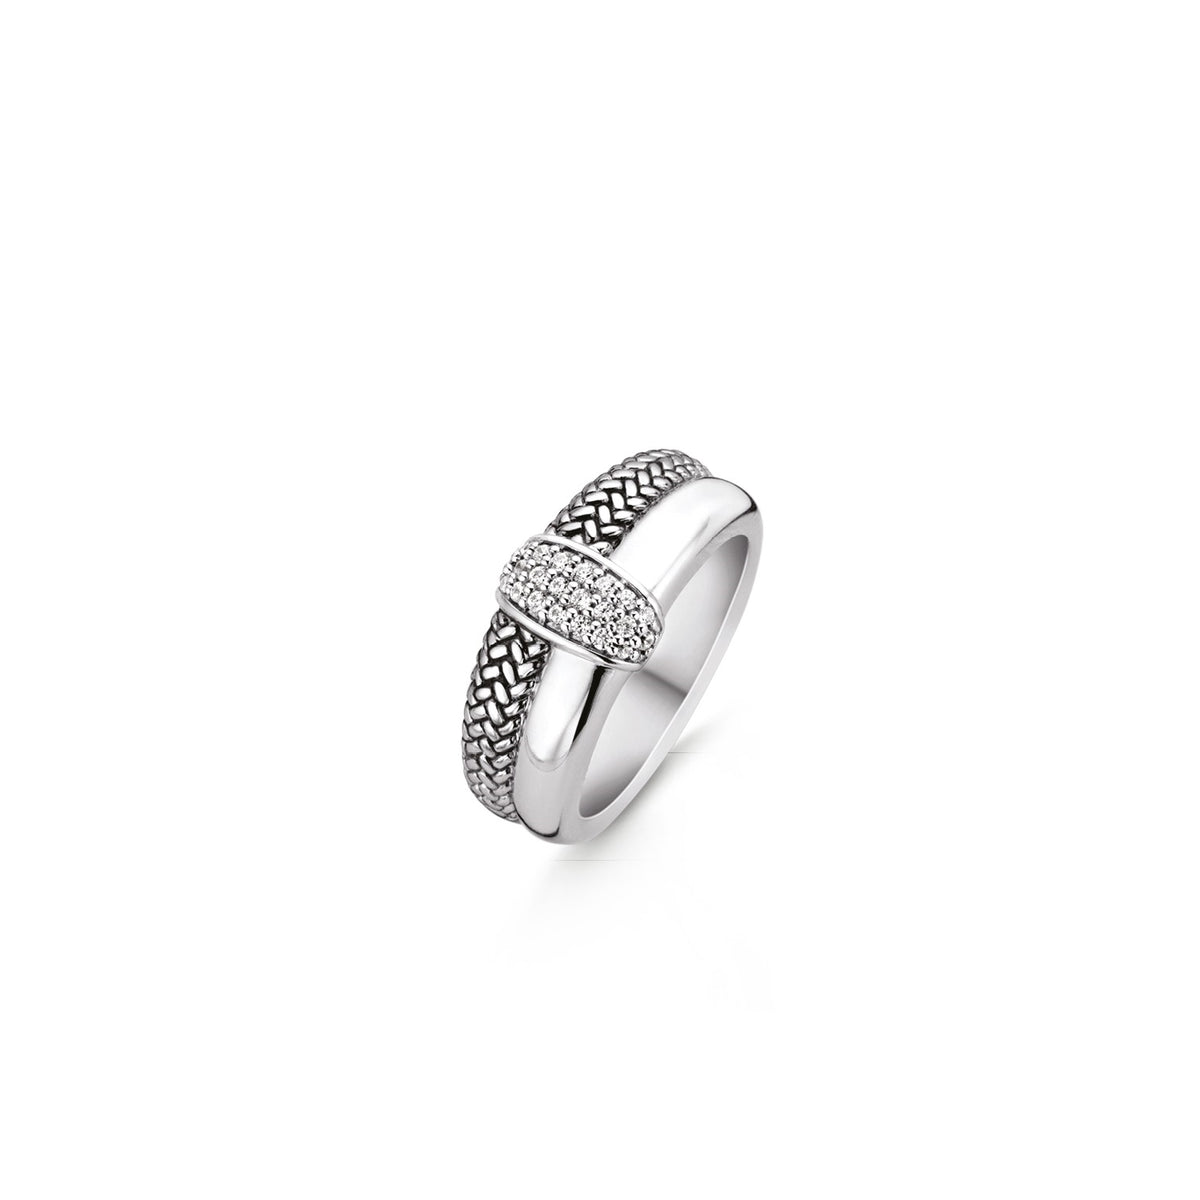 TI SENTO Sterling Silver Weave Band with Cubic Zirconia Center